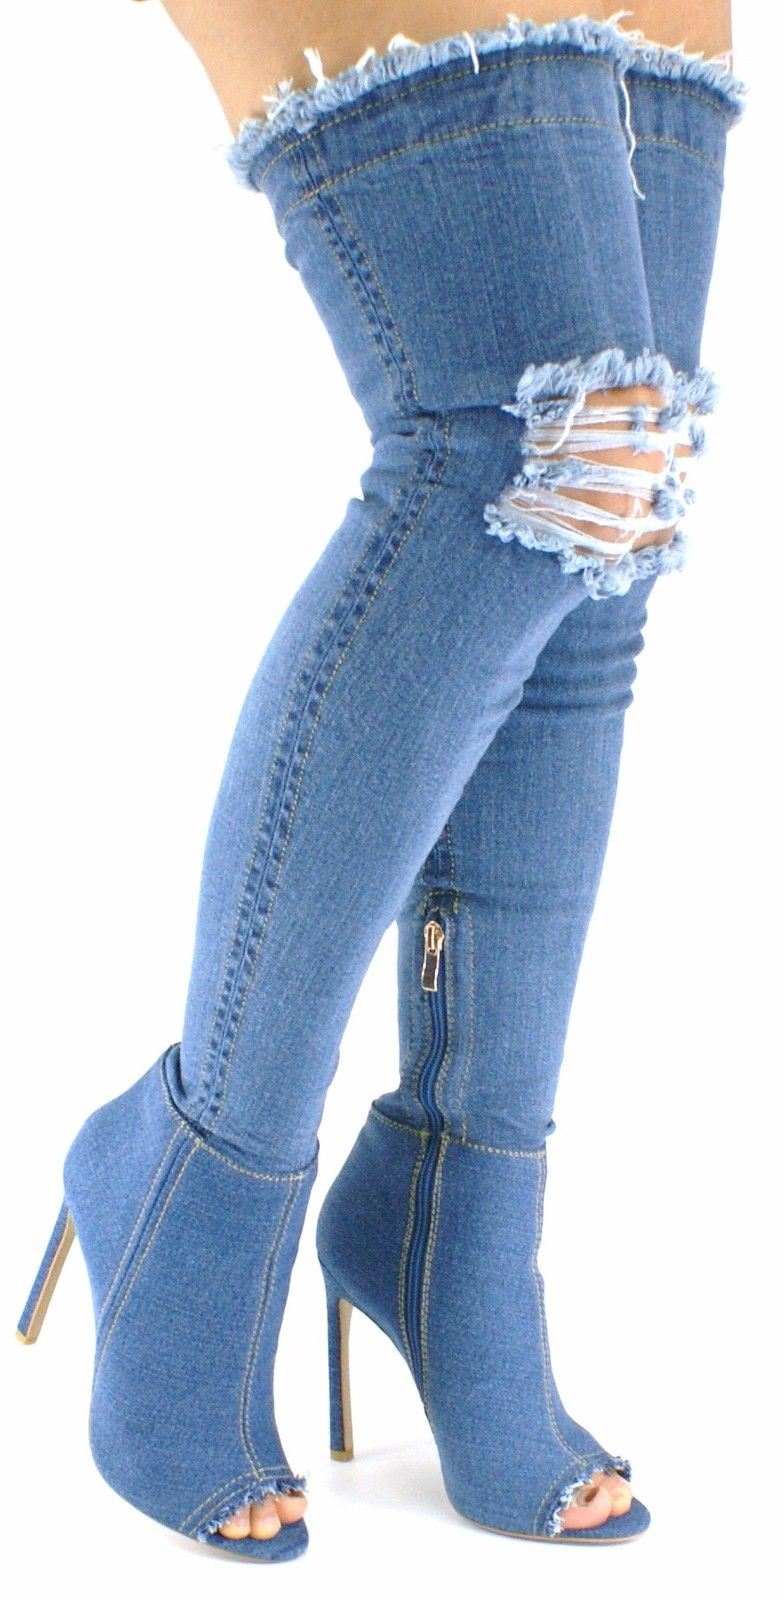 Model Denim Boots For Women | Blue Denim Jean Open Toe Mid Calf Boot Flat Dress Sandal Womens Shoes ...